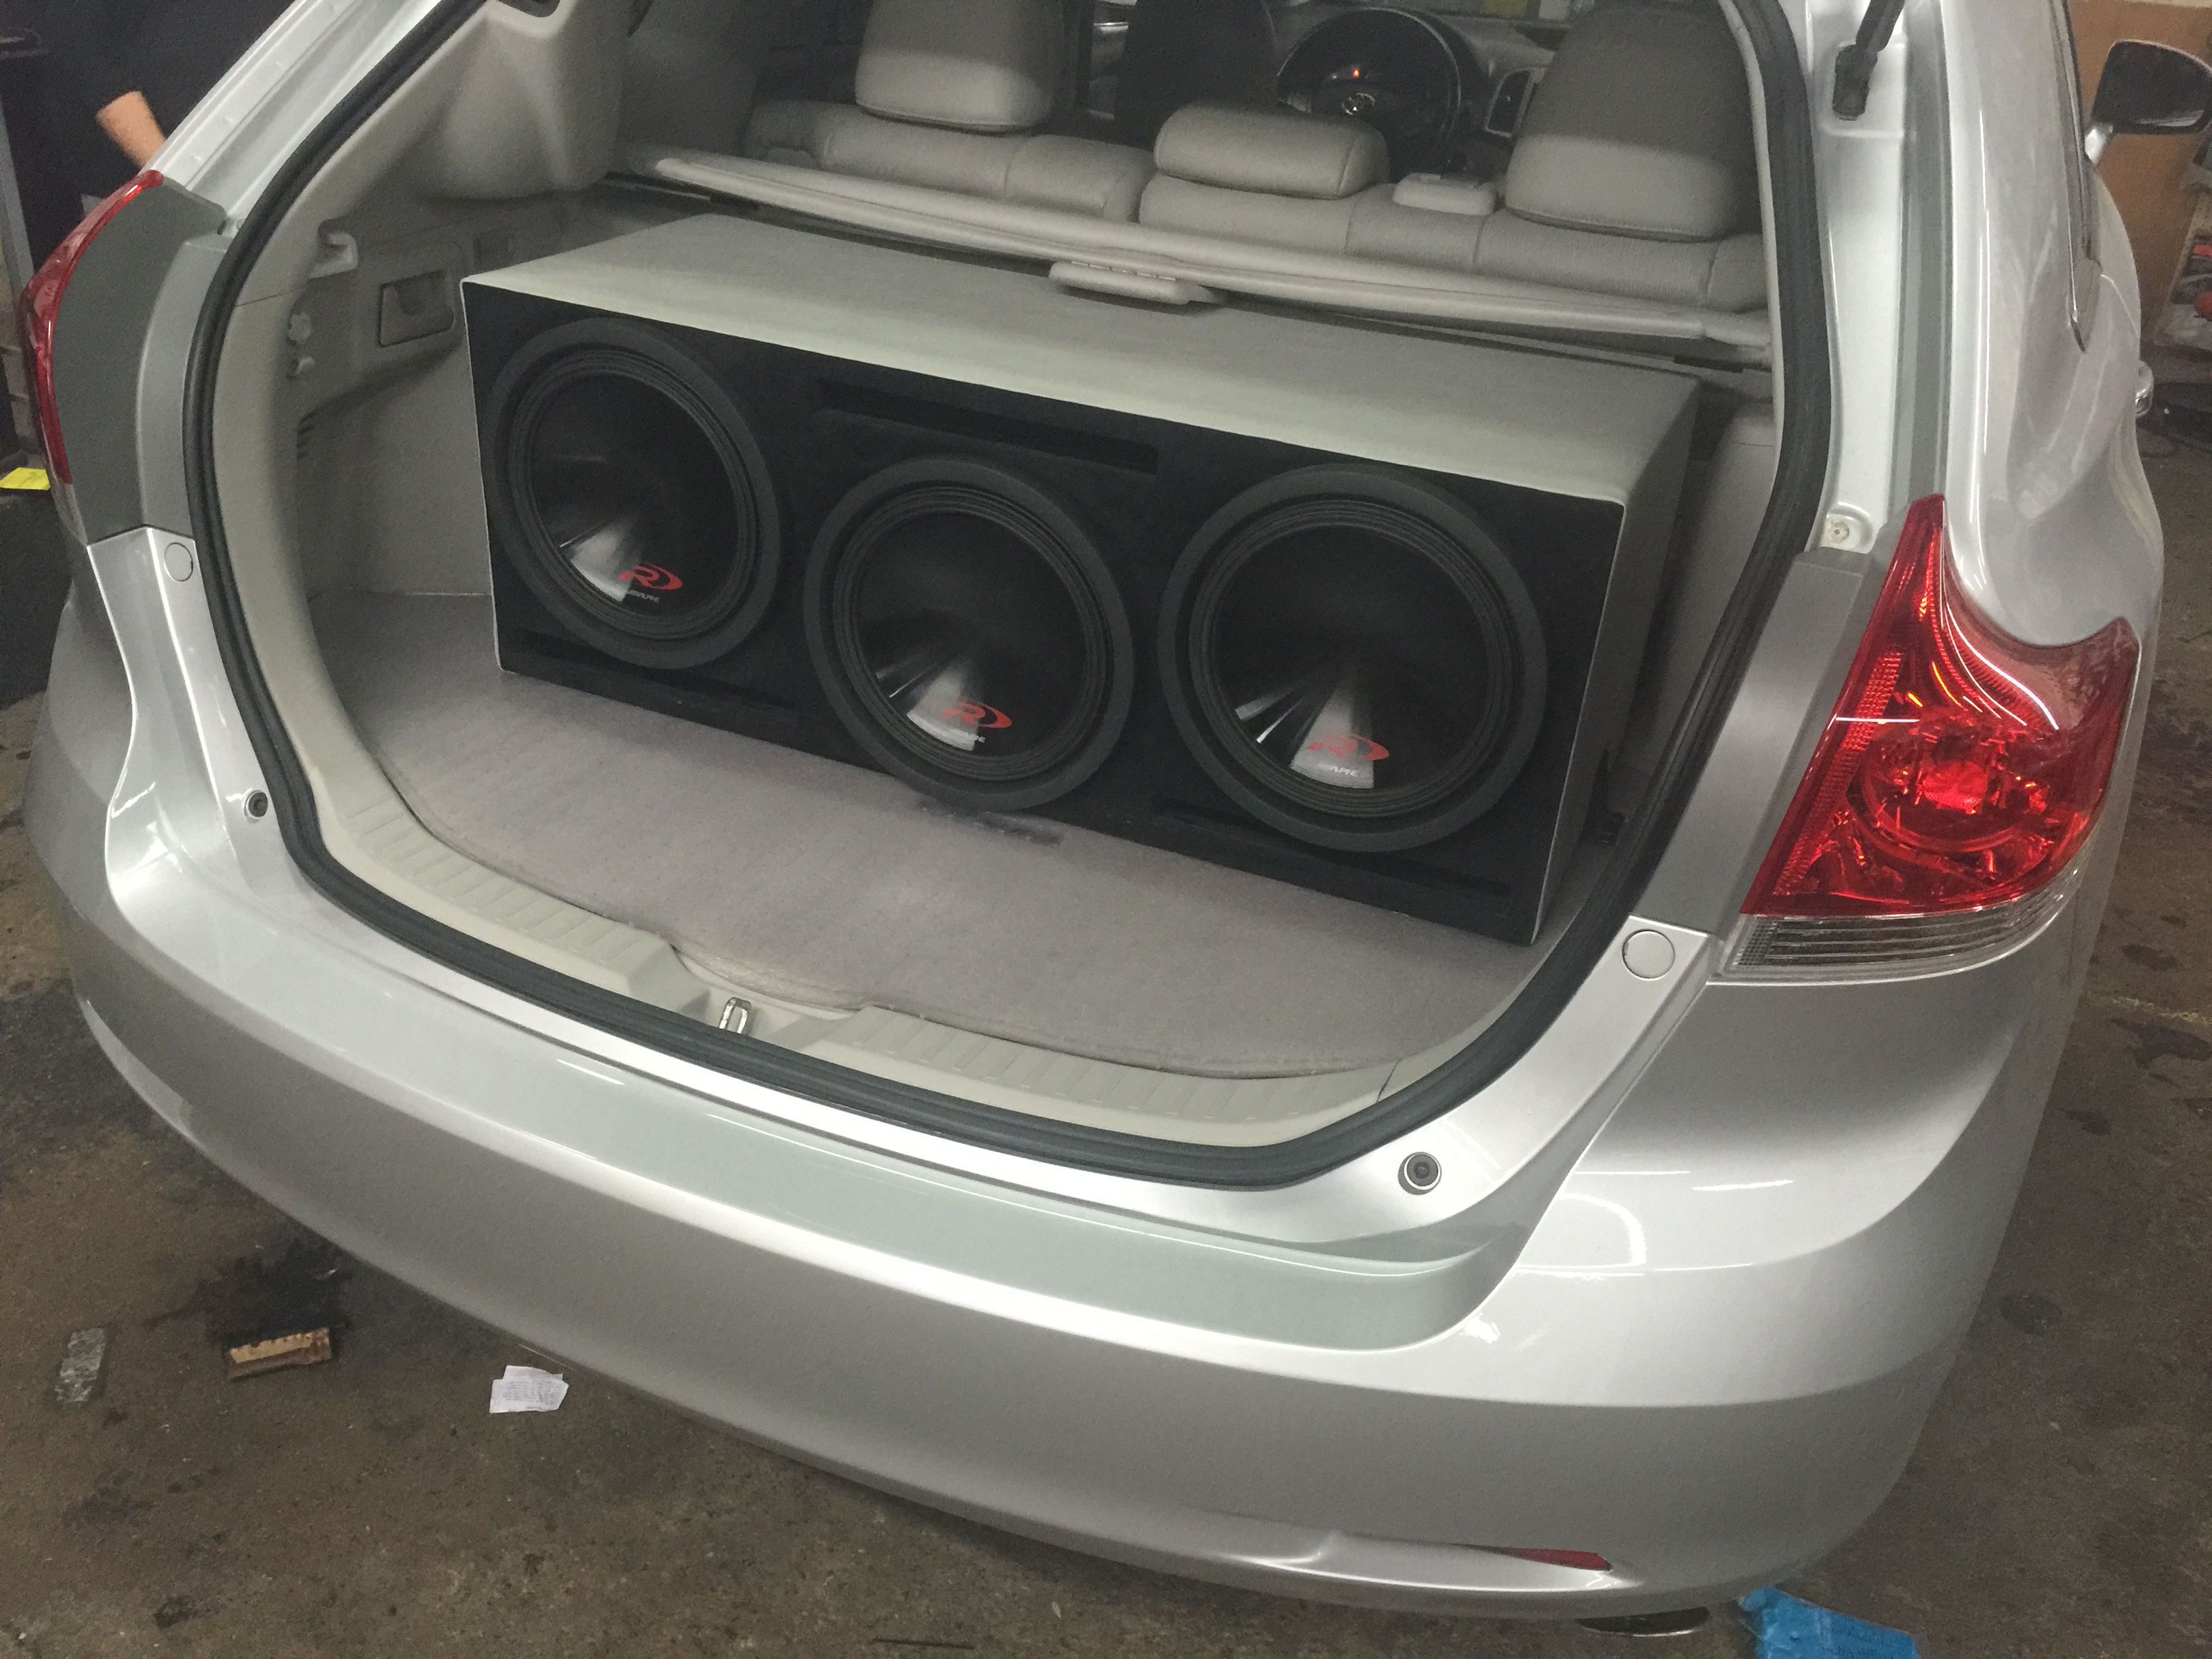 2008 Toyota Venza Customized High End Car Stereos Alarms